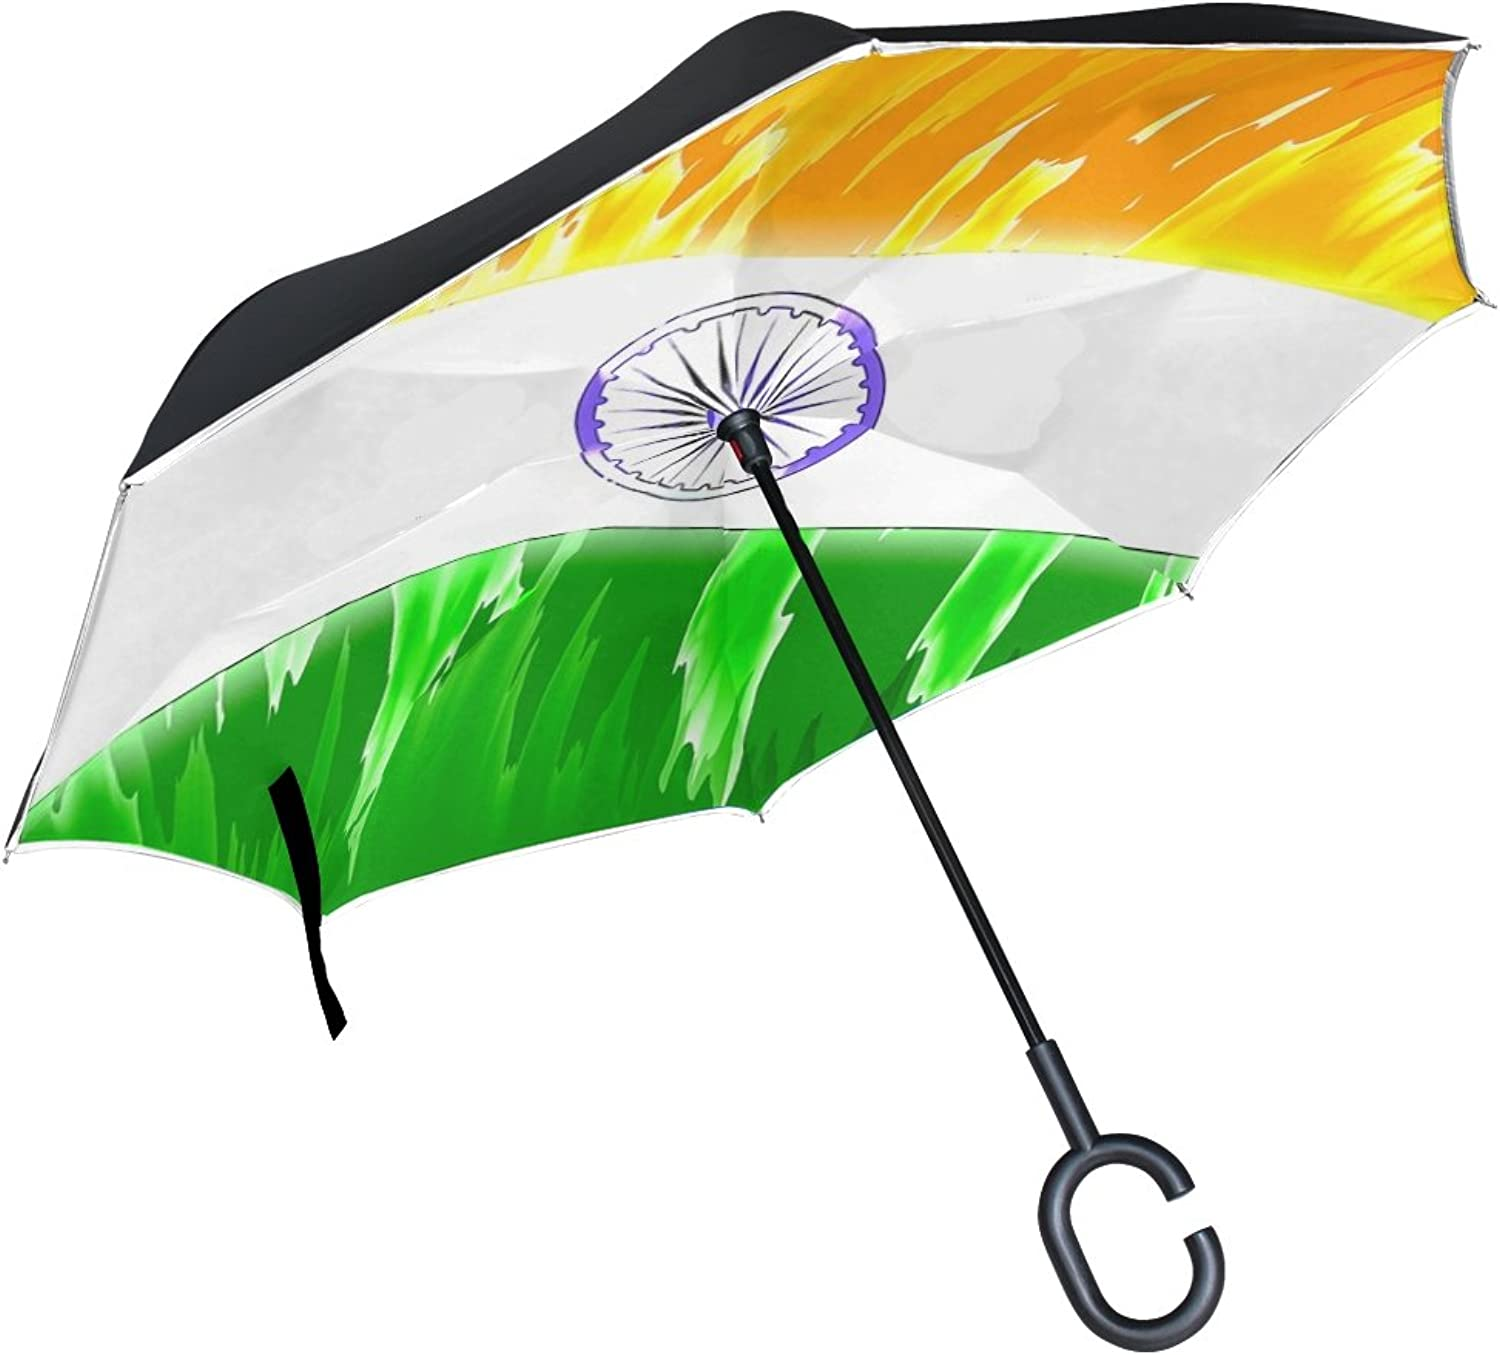 Double Layer Ingreened India National Flag Flag National Colours National Umbrellas Reverse Folding Umbrella Windproof Uv Predection Big Straight Umbrella for Car Rain Outdoor with CShaped Handle